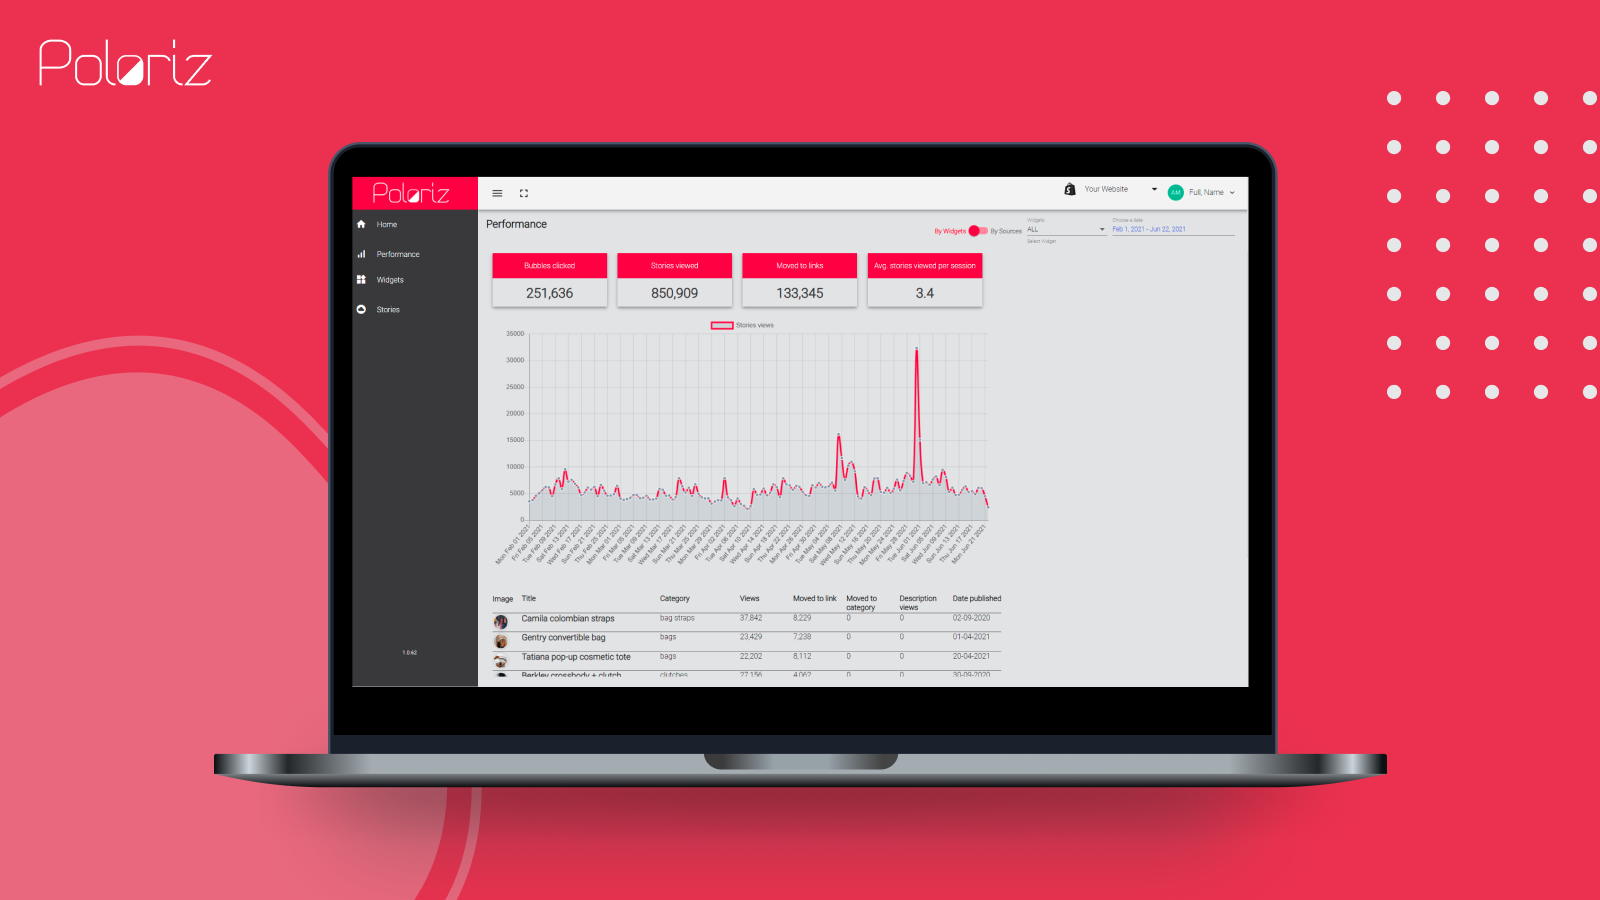 Analytics dashboard with date picker and performance